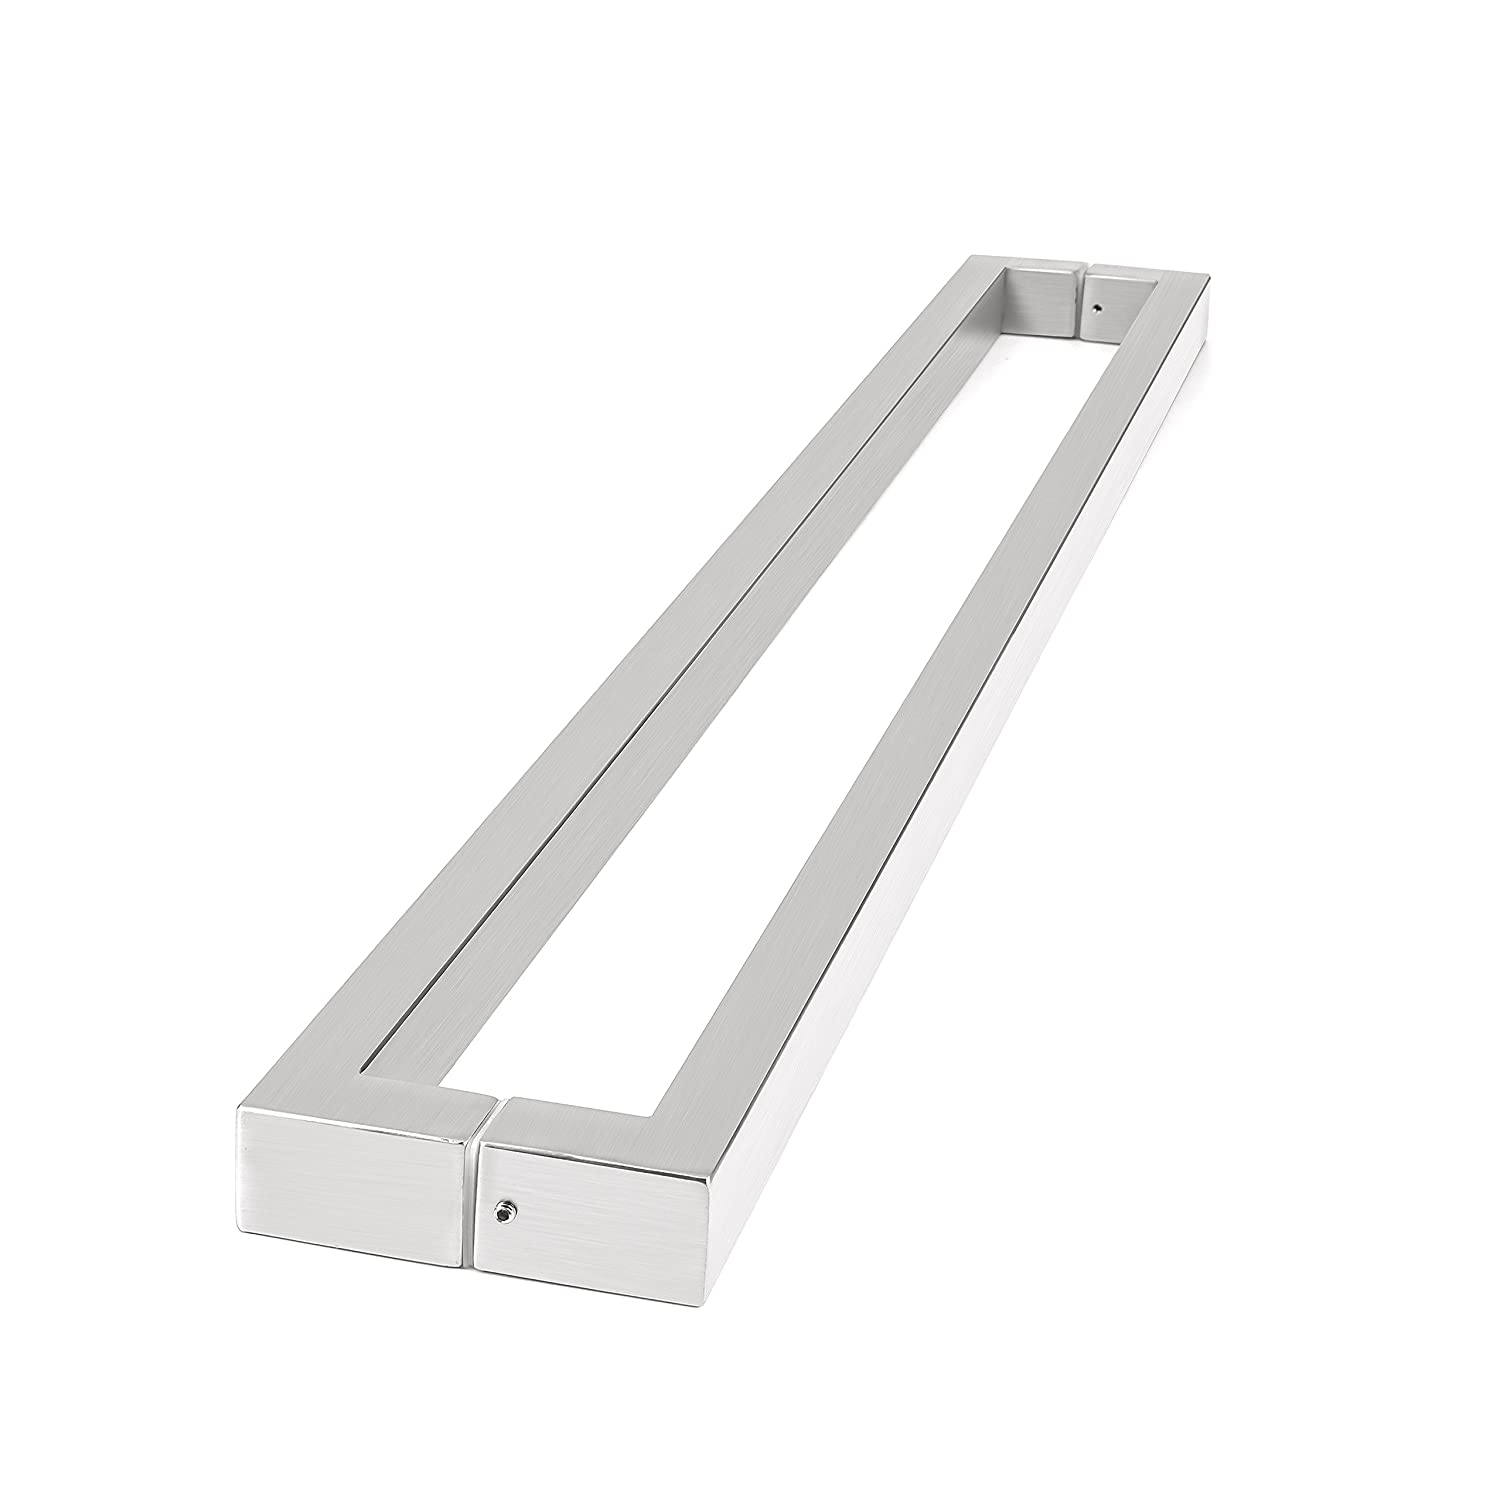 Amoylimai 36 Inches //900x25x38mm 166 Rectangular-shaped Modern Stainless Steel Sus304 Entrance Entry Commercial Office Store Front Wood Timber Glass Garage Aluminum Business Office Door Pull Push Handles Double-sided